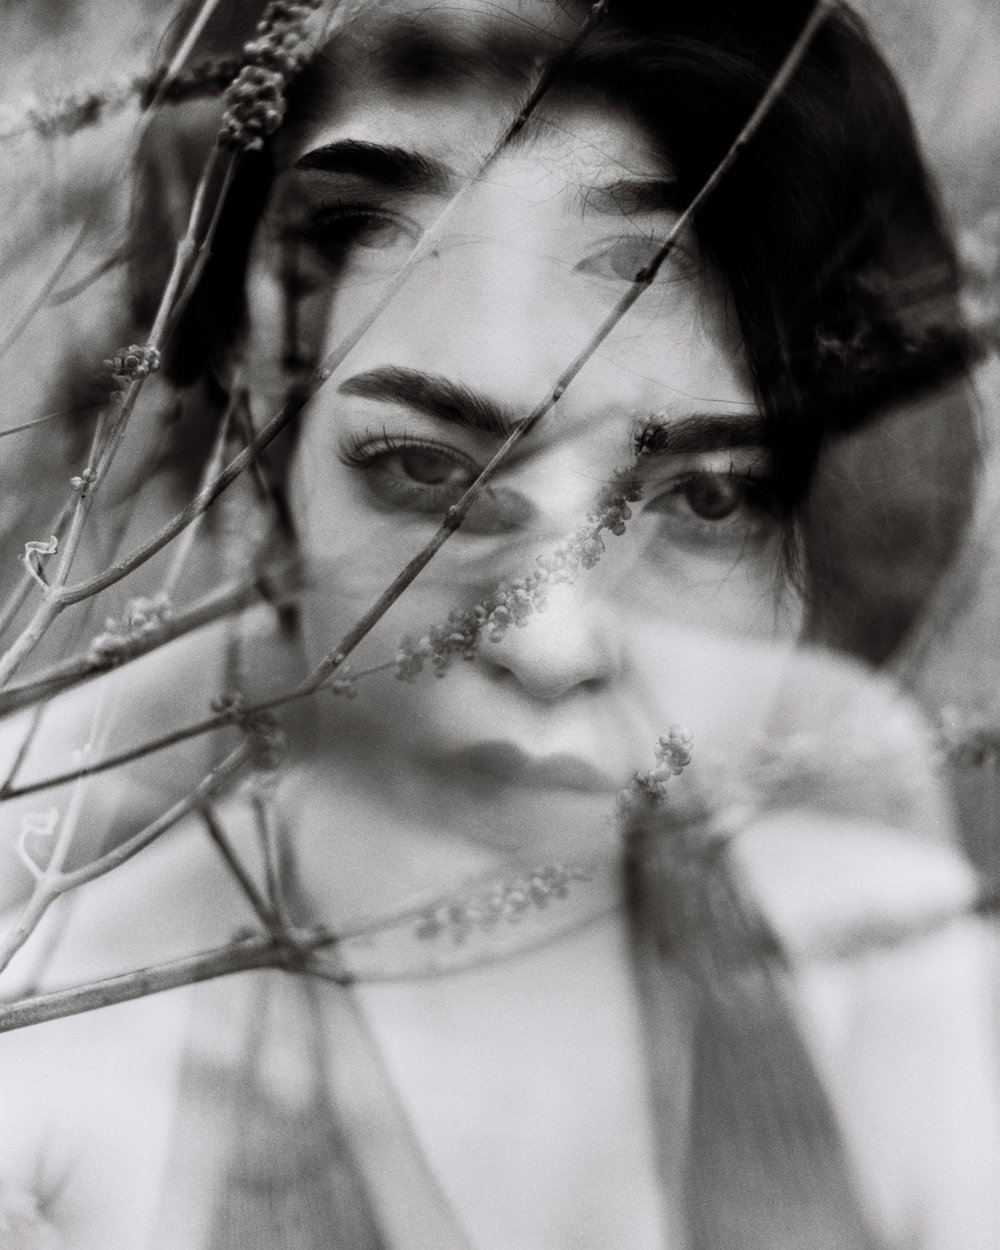 1_Alicia_Rose_Canon_AE1_Rollei_Retro_80s_Double_Exposure_AZ_Vouge_Film_Copyright_Taylor_Noel_Photography.jpg